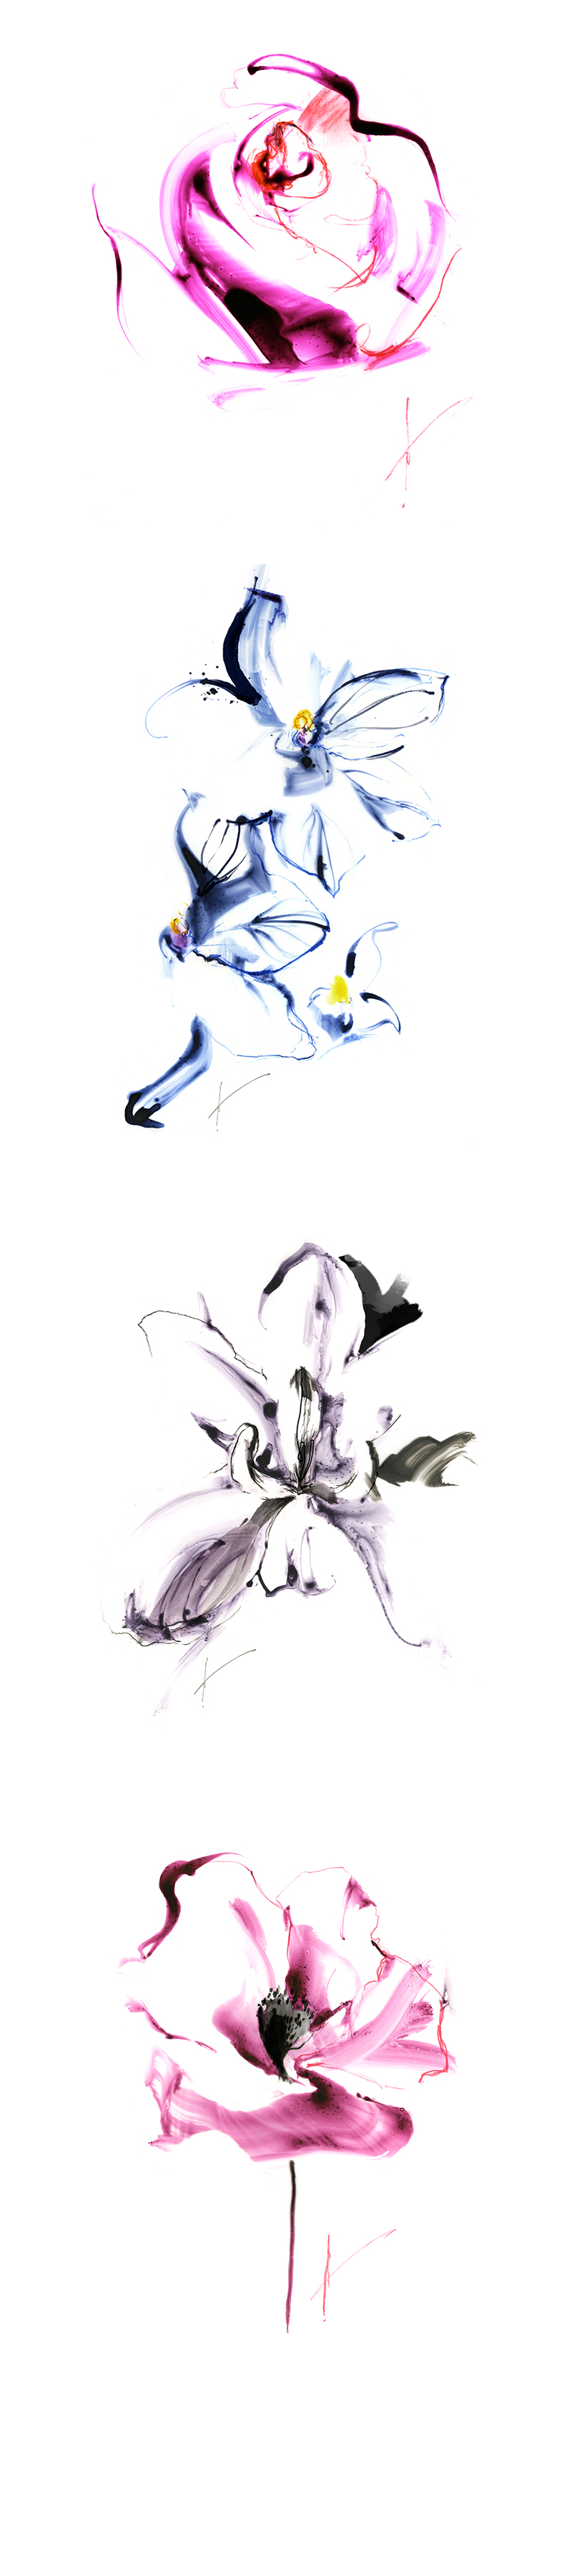 flower_drawing_01